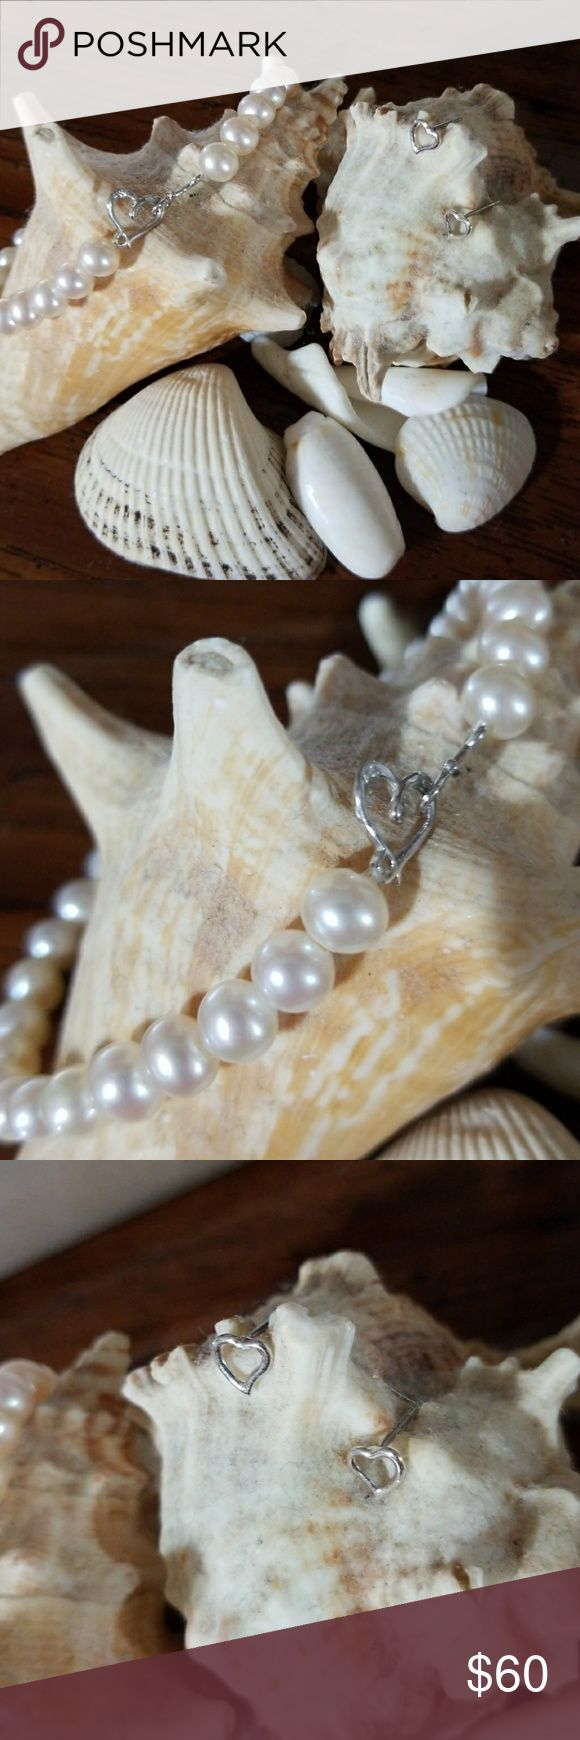 Pearls &  Hearts Beautiful fresh water pearl braclet with Sterling silver heart clasp ( Pangoda) Mini Stirling silver heart earrings (Pandora) Just adorable Great Valentines gift piercing pagoda Jewelry Bracelets